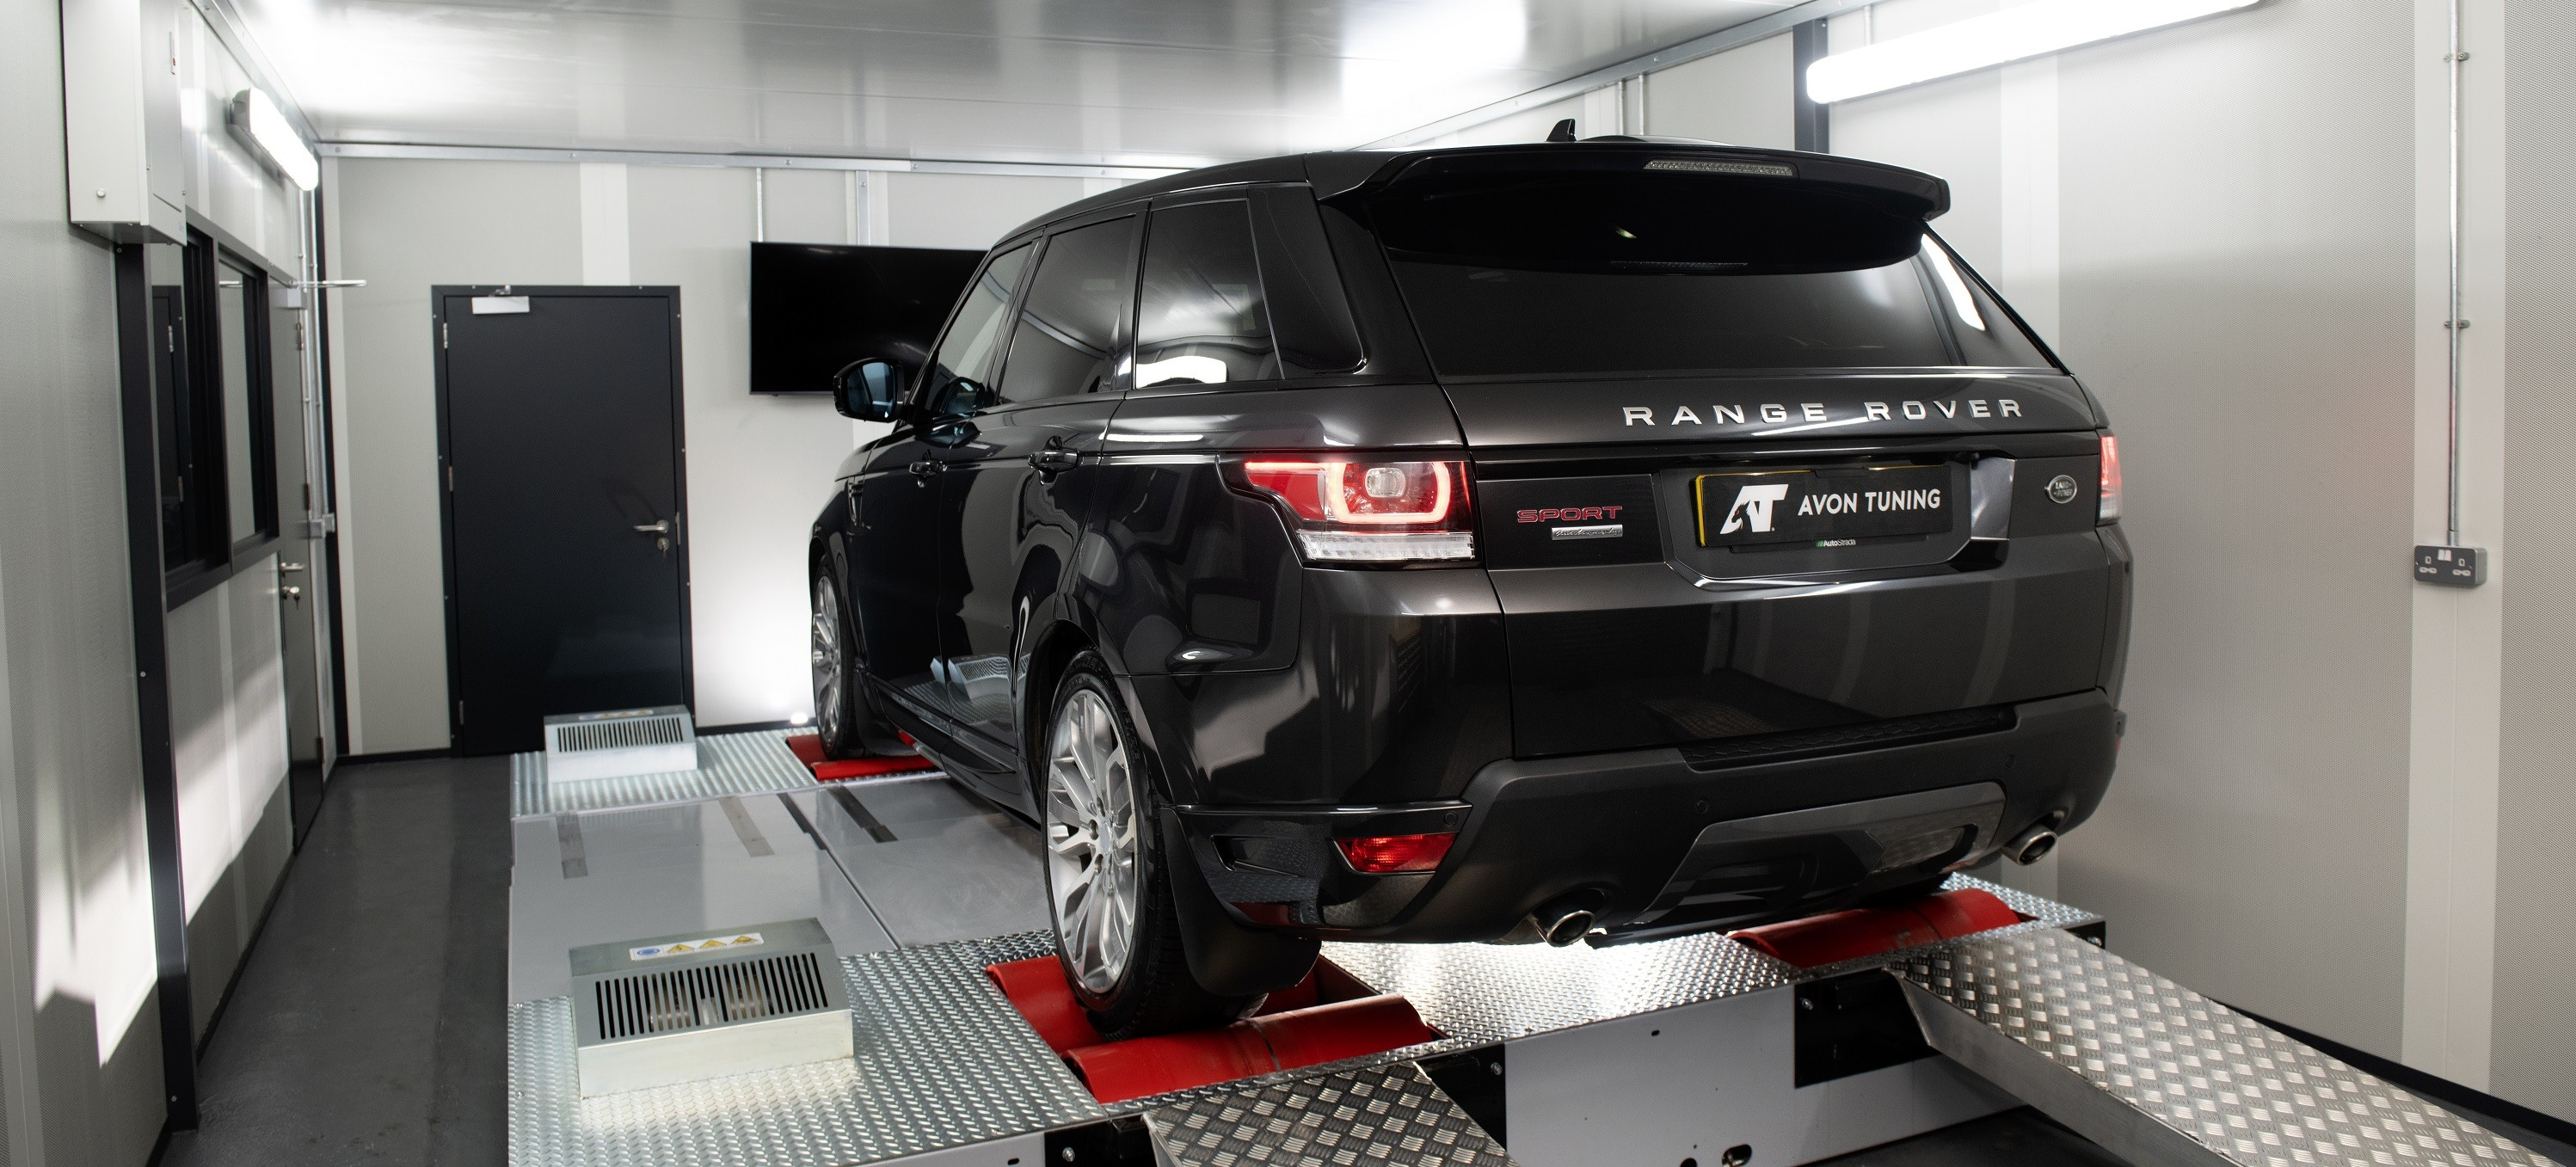 Remapping & Dyno Sepcialist